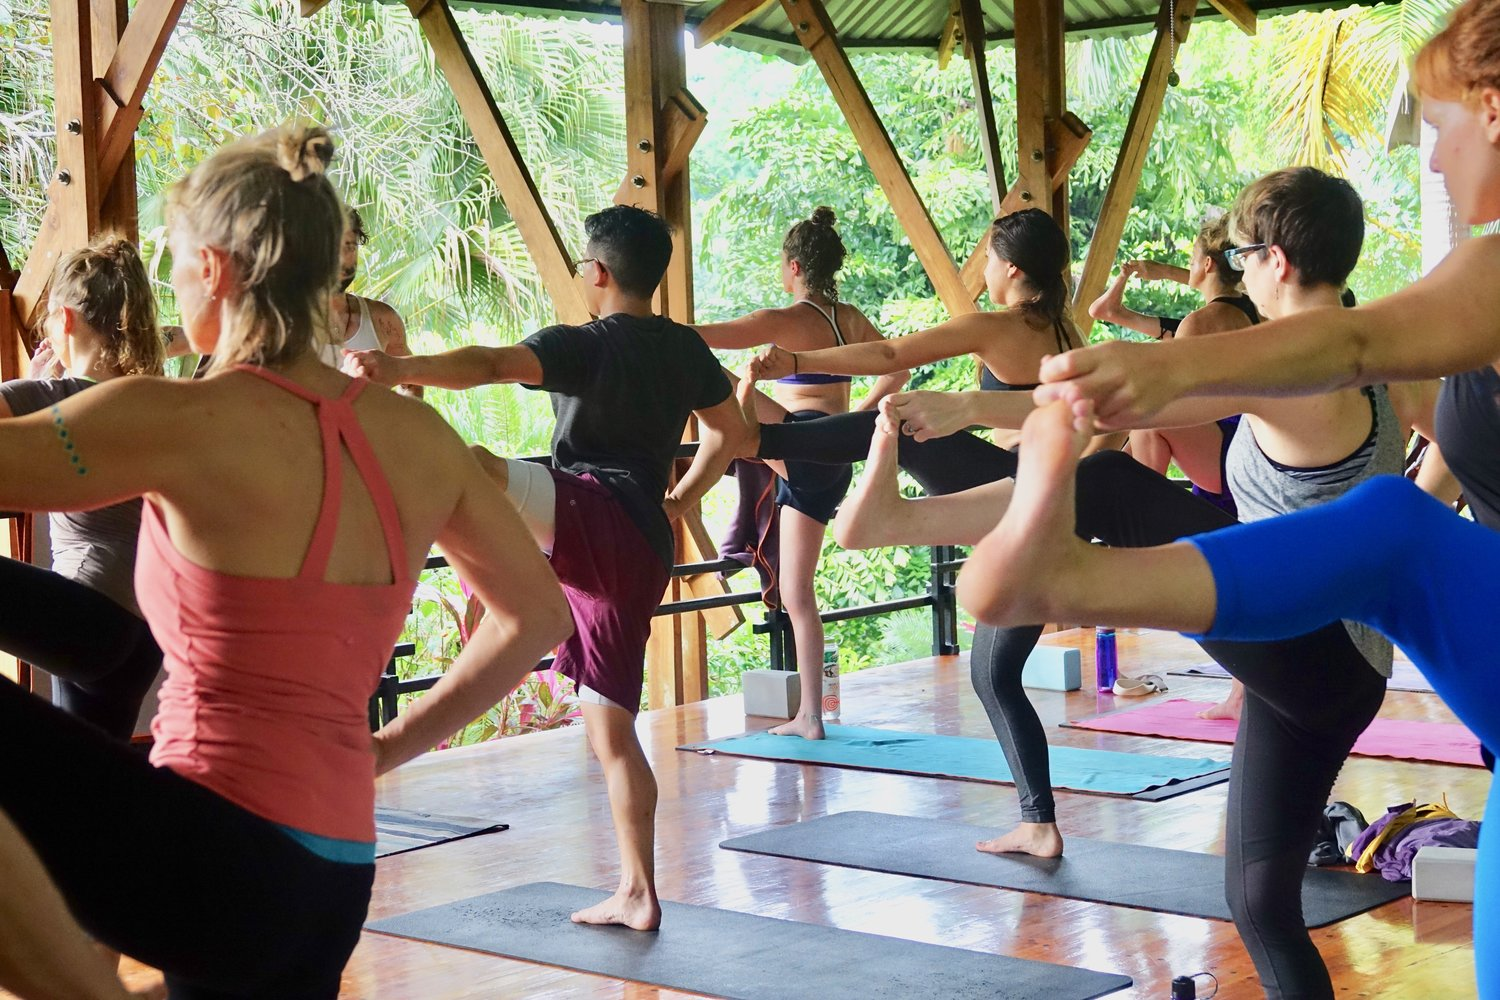 Costa Rica Yoga Teacher Training Intensive Immersion Retreat Abroad 2020 The Sanctuary At Two Rivers